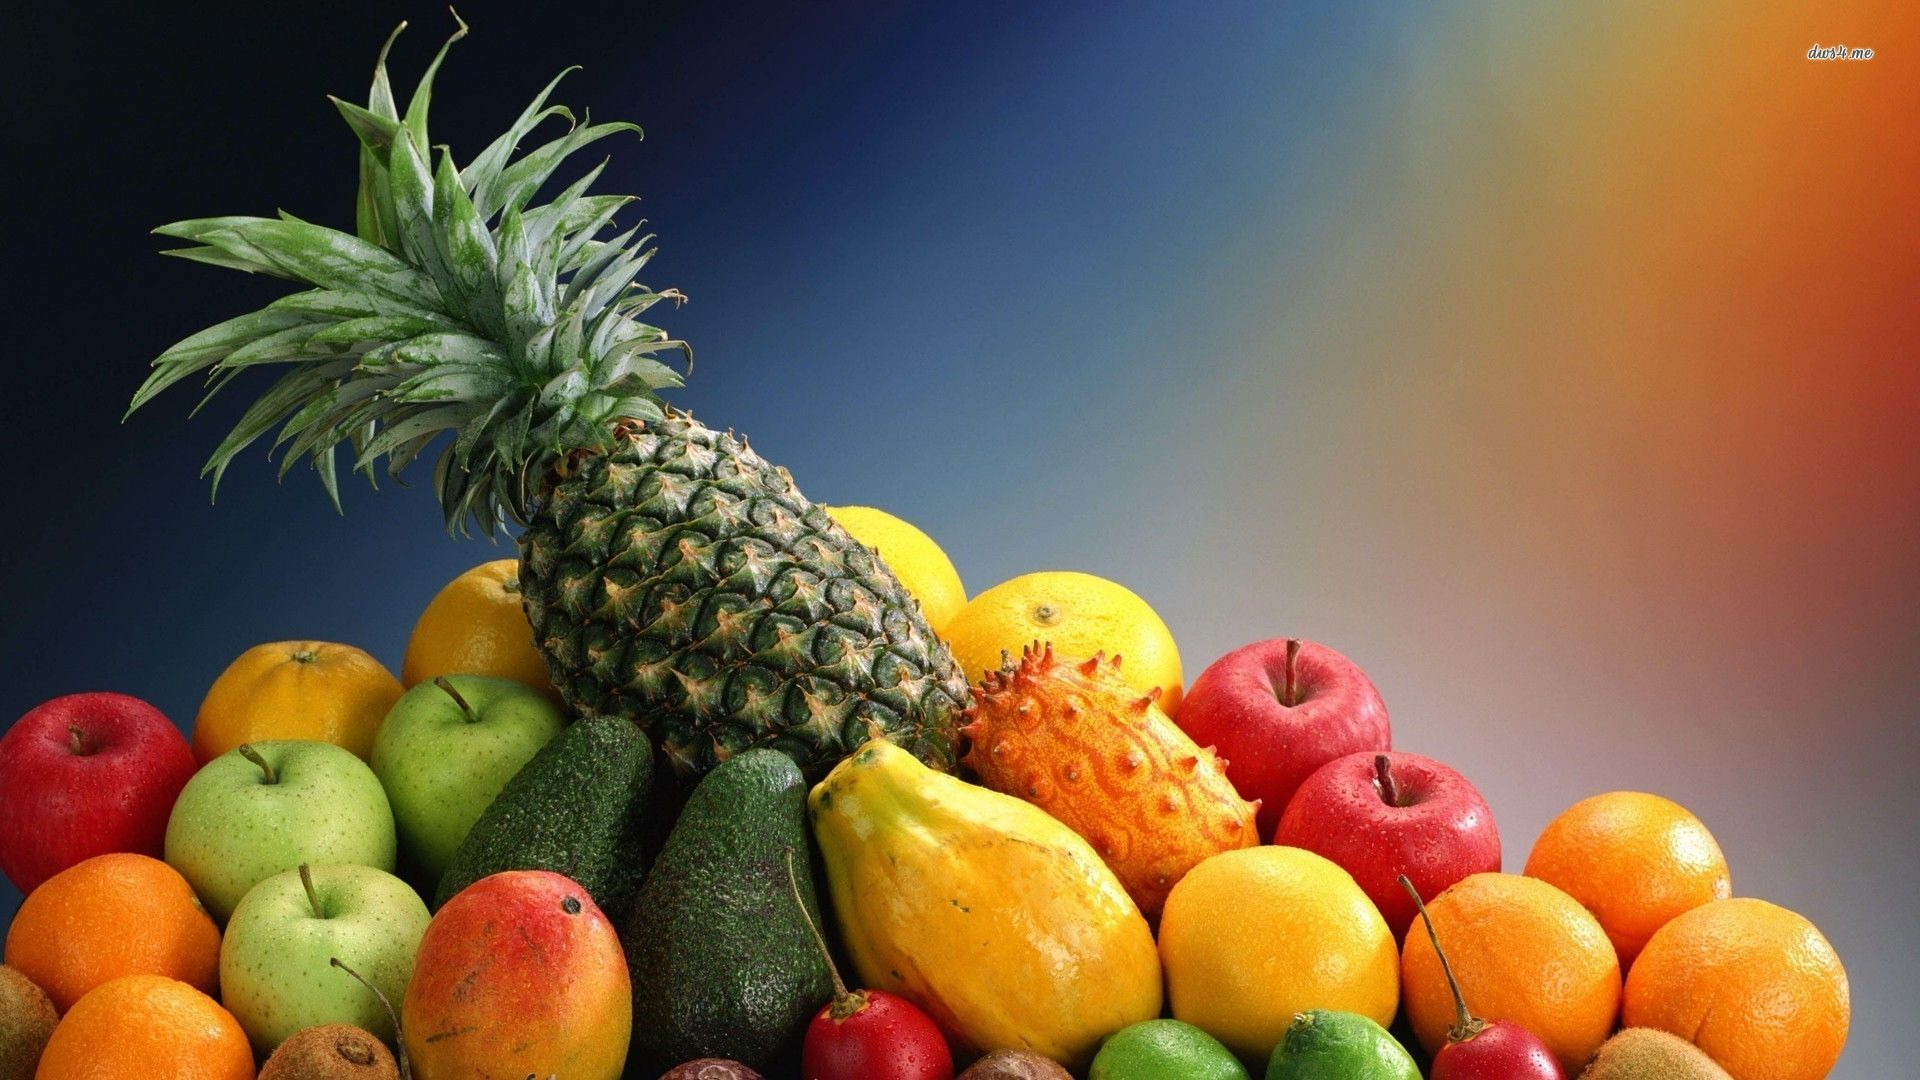 Fruits Wallpaper posted by Ethan Anderson 1920x1080